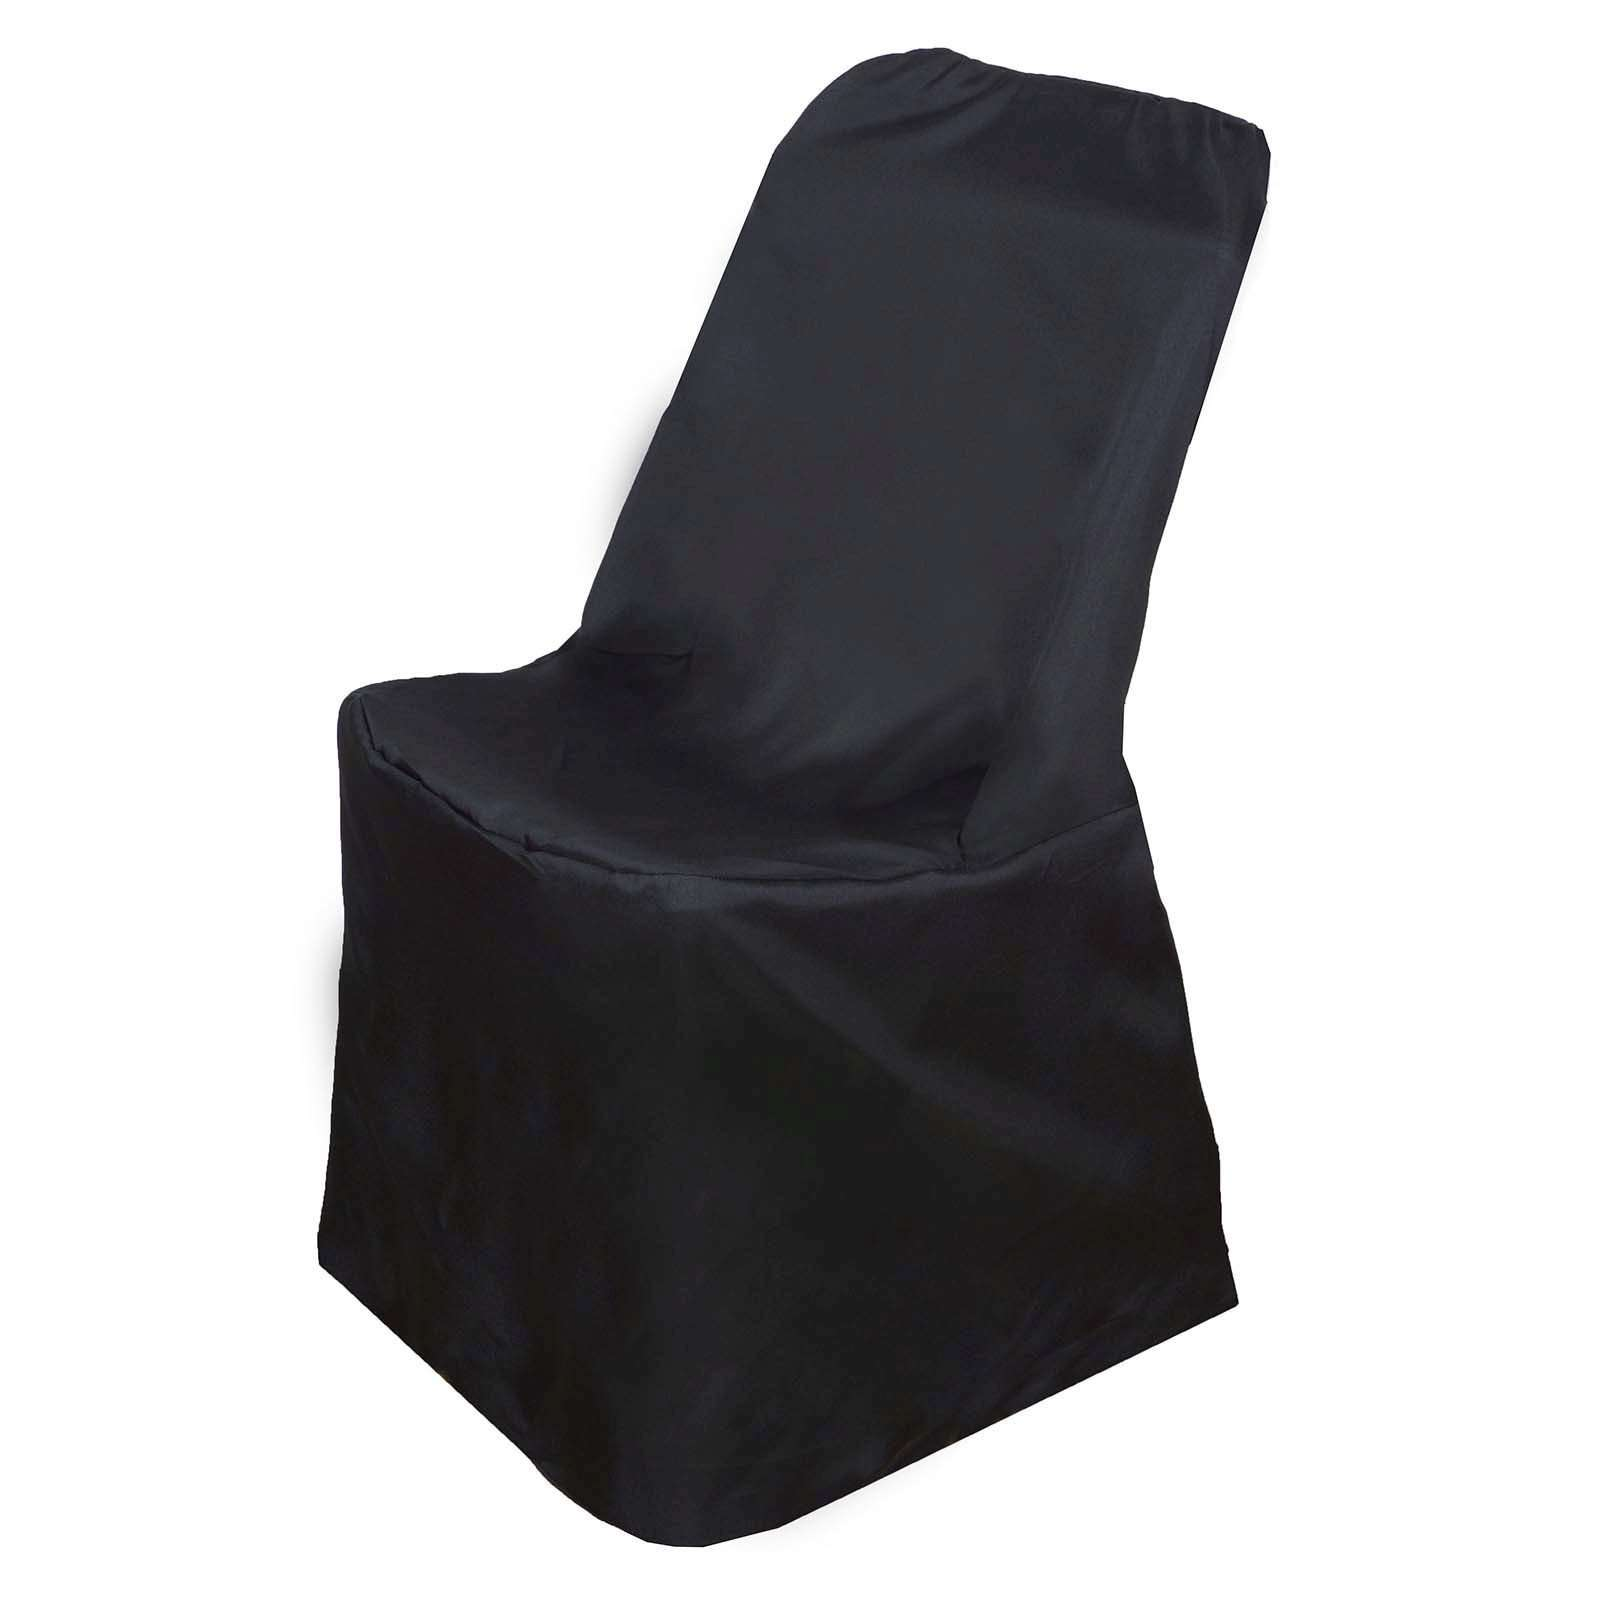 Stupendous Wholesale Black Polyester Lifetime Folding Chair Covers Party Wedding Event Chaircoverfactory Gmtry Best Dining Table And Chair Ideas Images Gmtryco